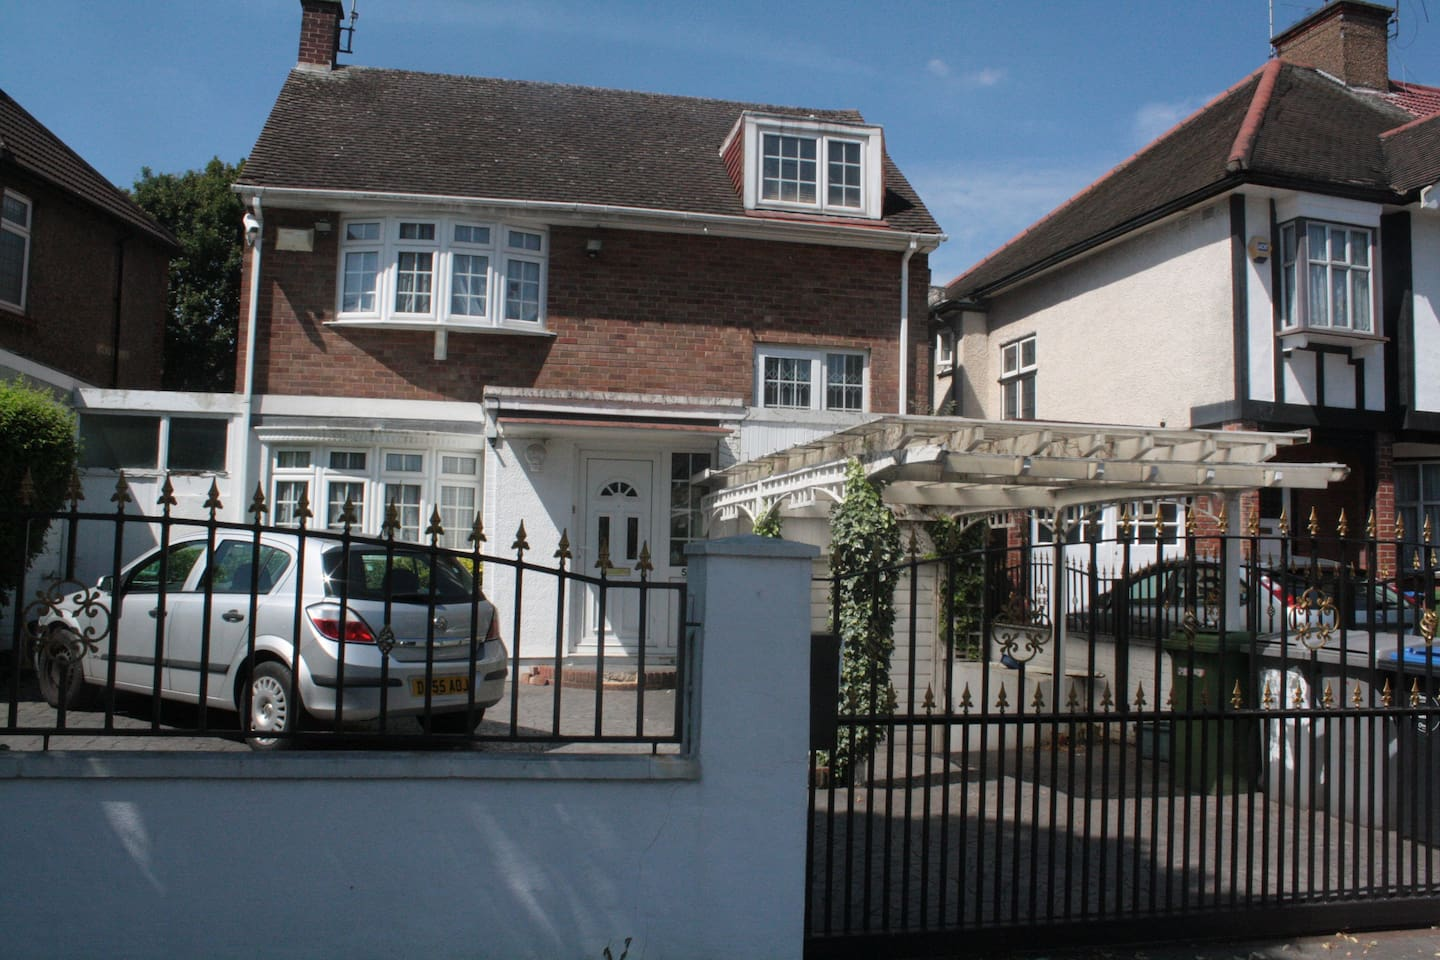 Large spacious 4 bedroom detached house with large drive and gated